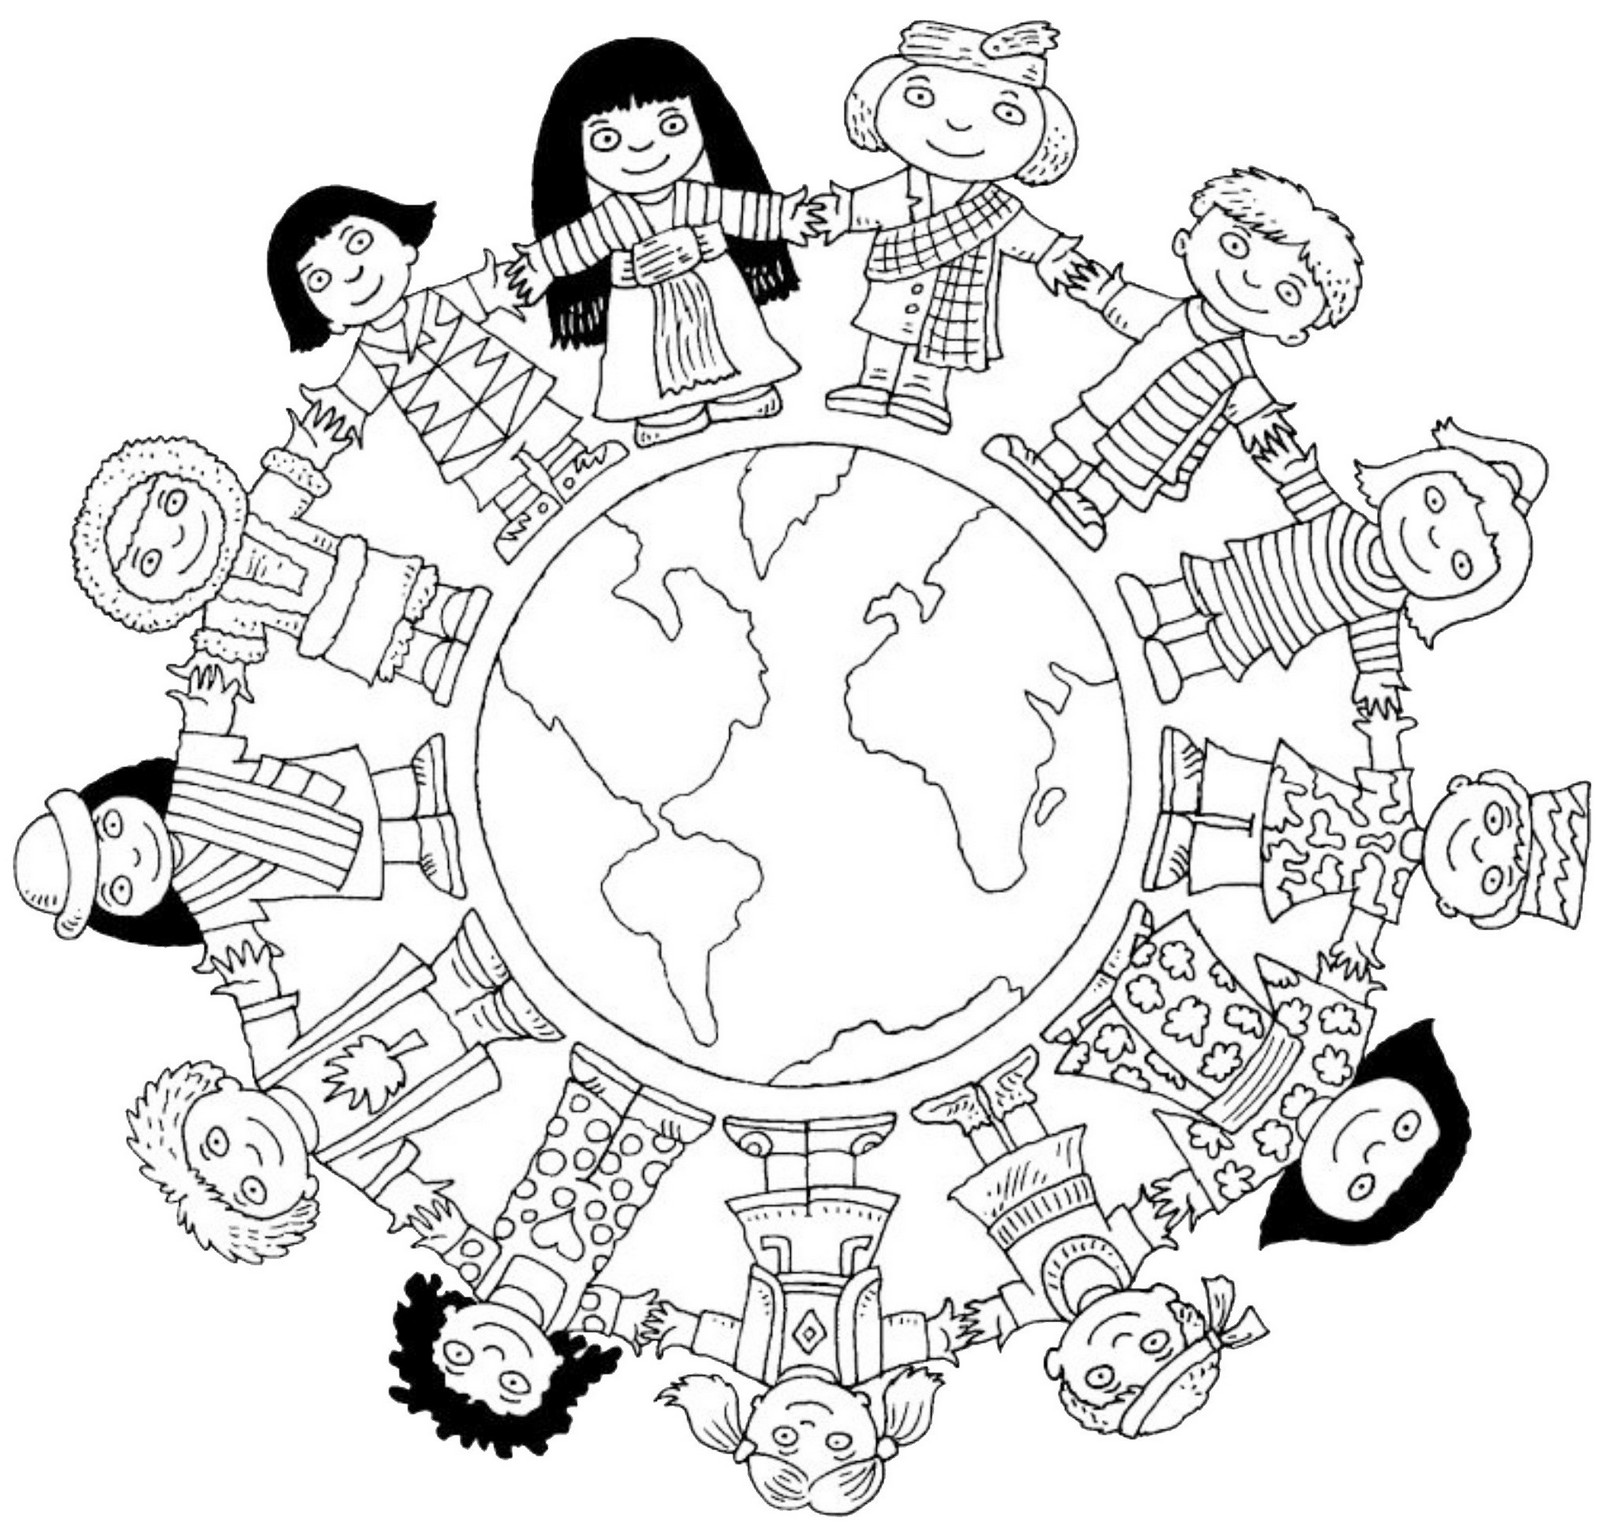 unity in diversity in world coloring sheet for kids